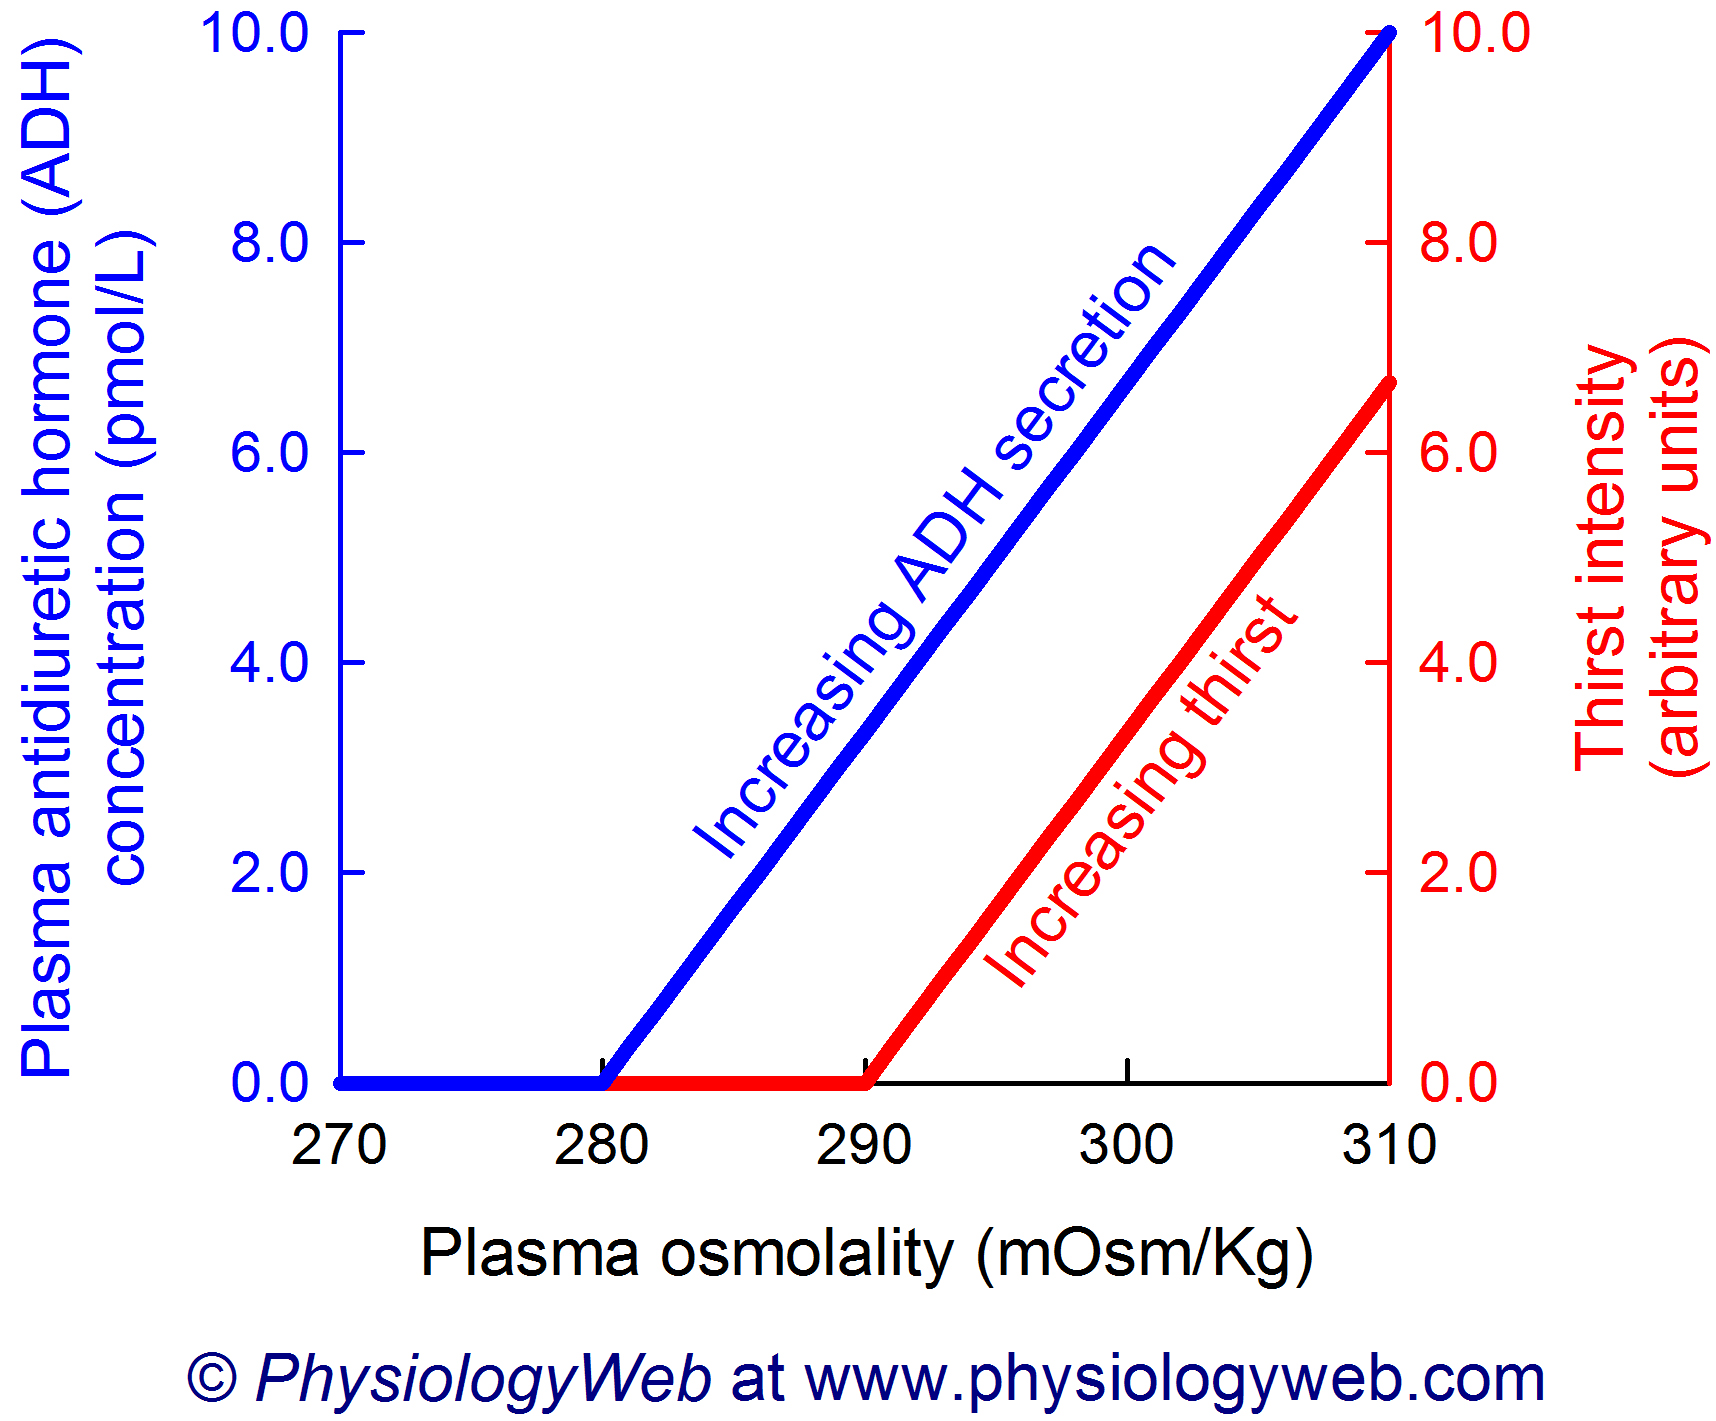 Increases in plasma osmolality increase antidiuretic hormone (ADH) secretion and thirst intensity.